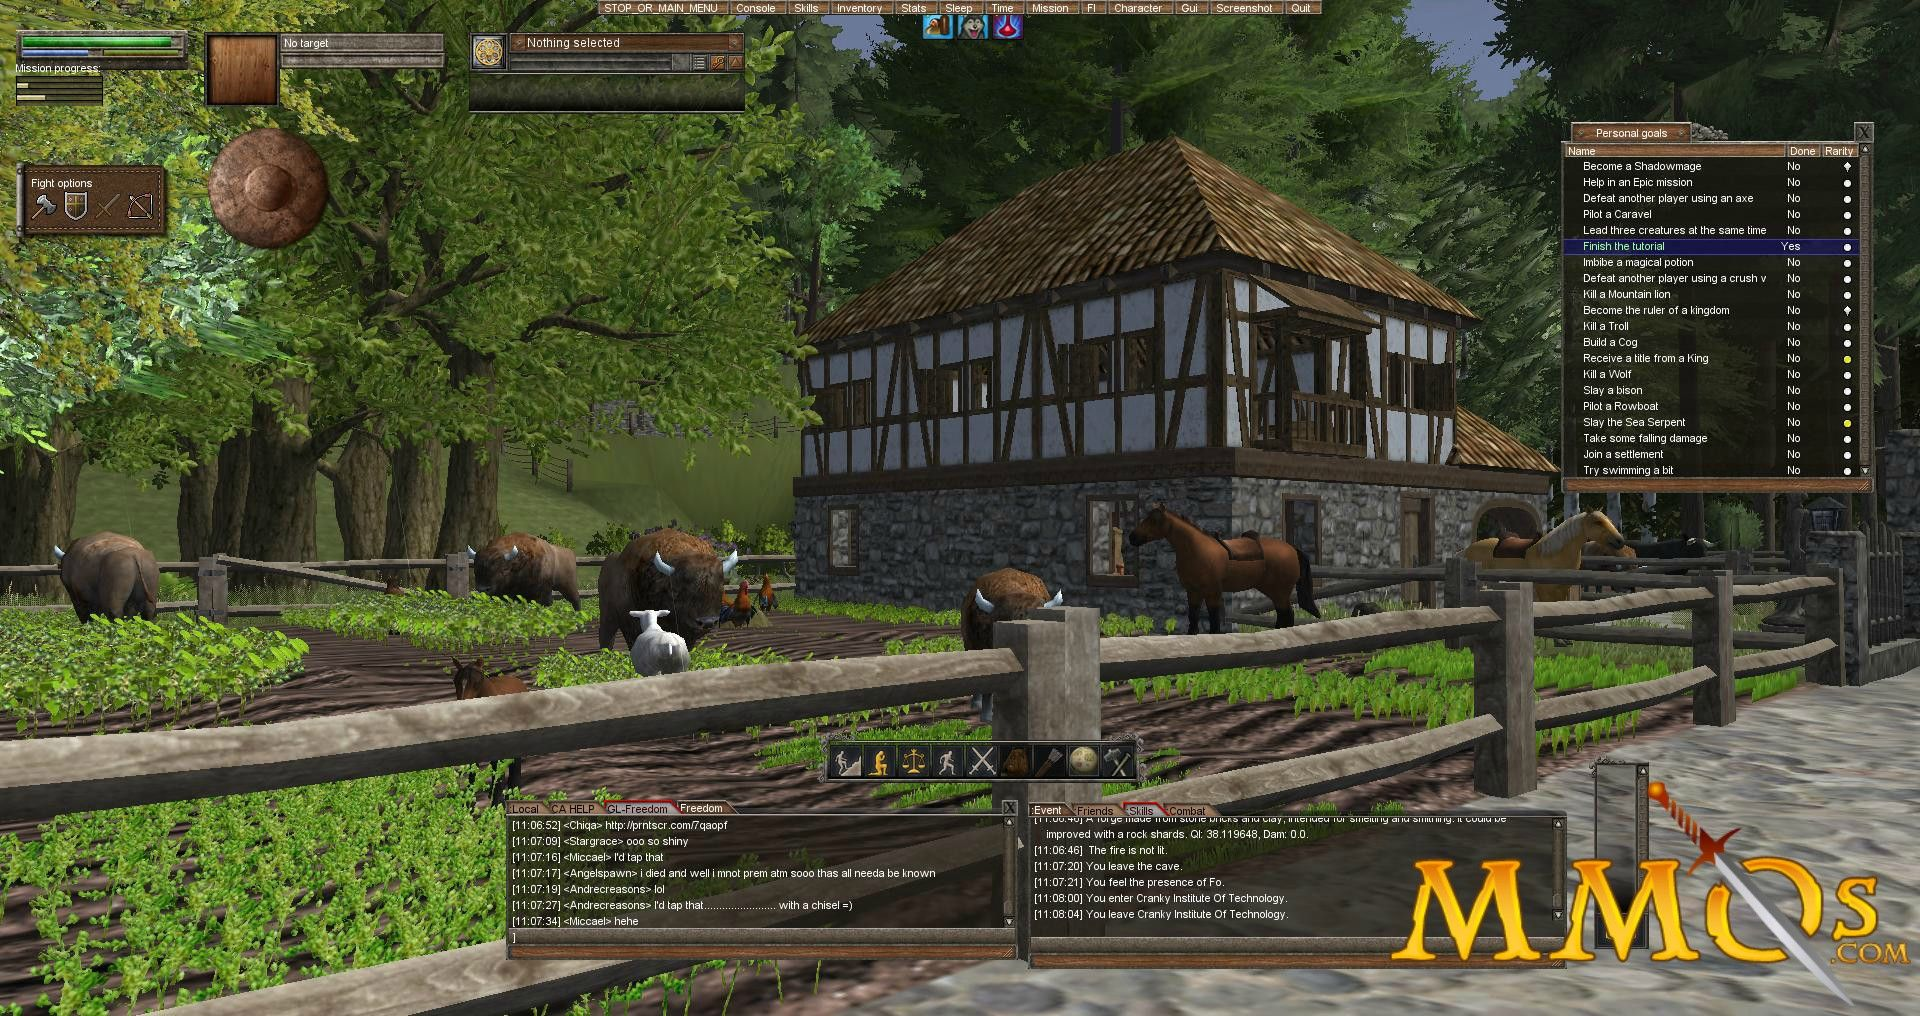 Free Working Wurm Online Hack Download, one of the